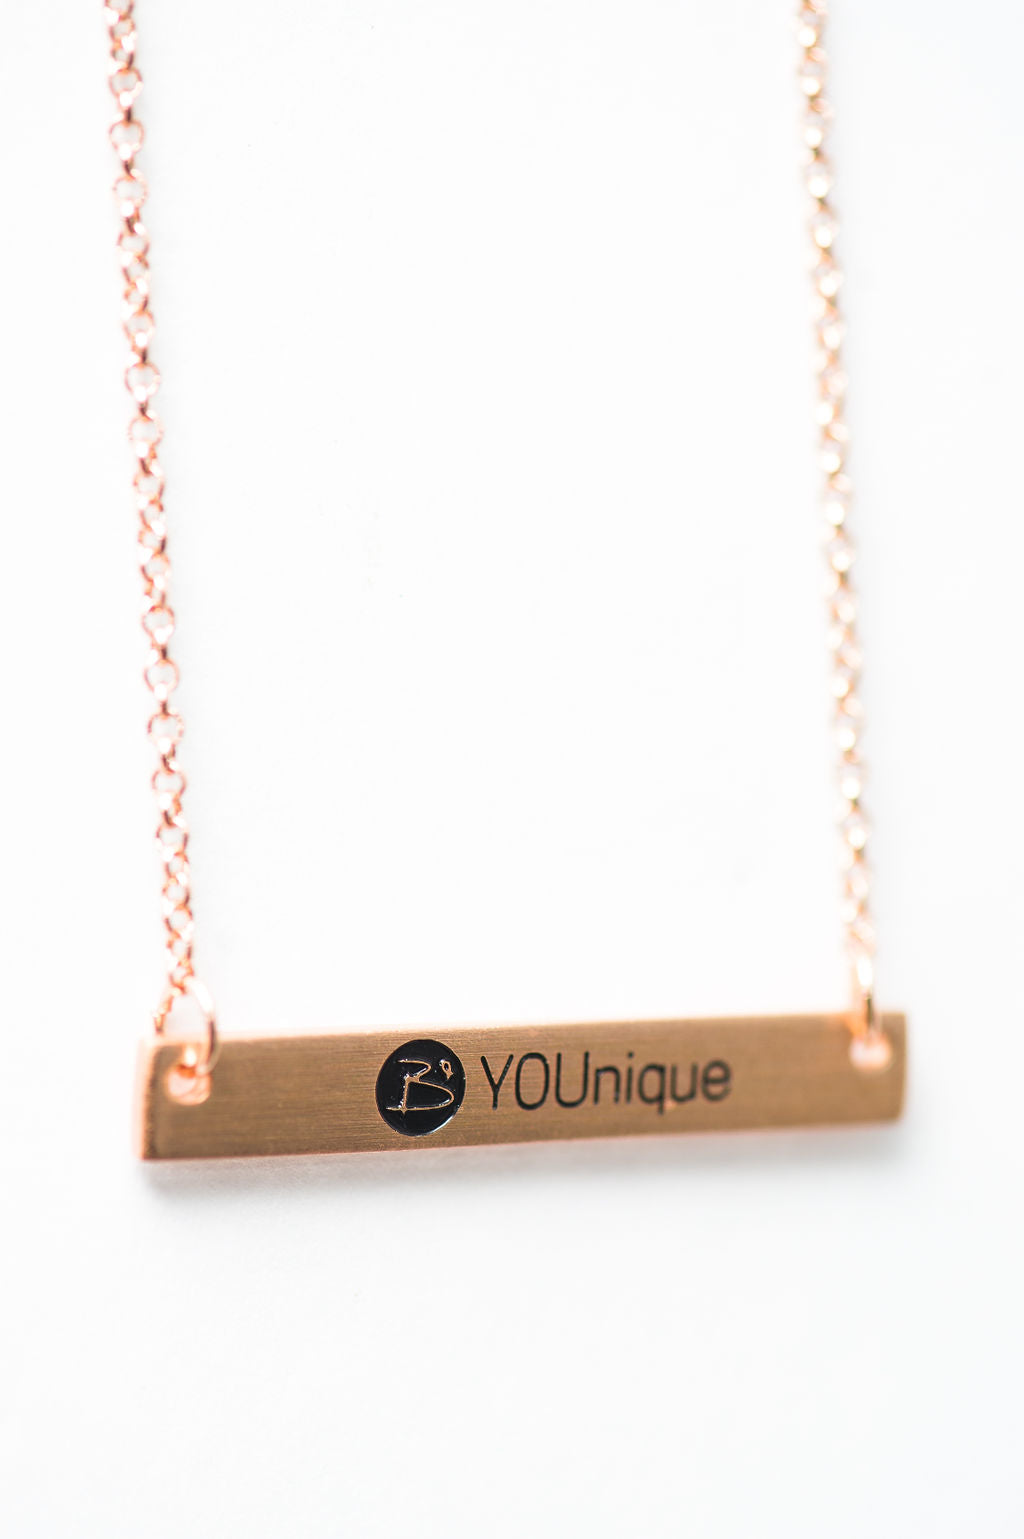 BE YOUNIQUE NECKLACE